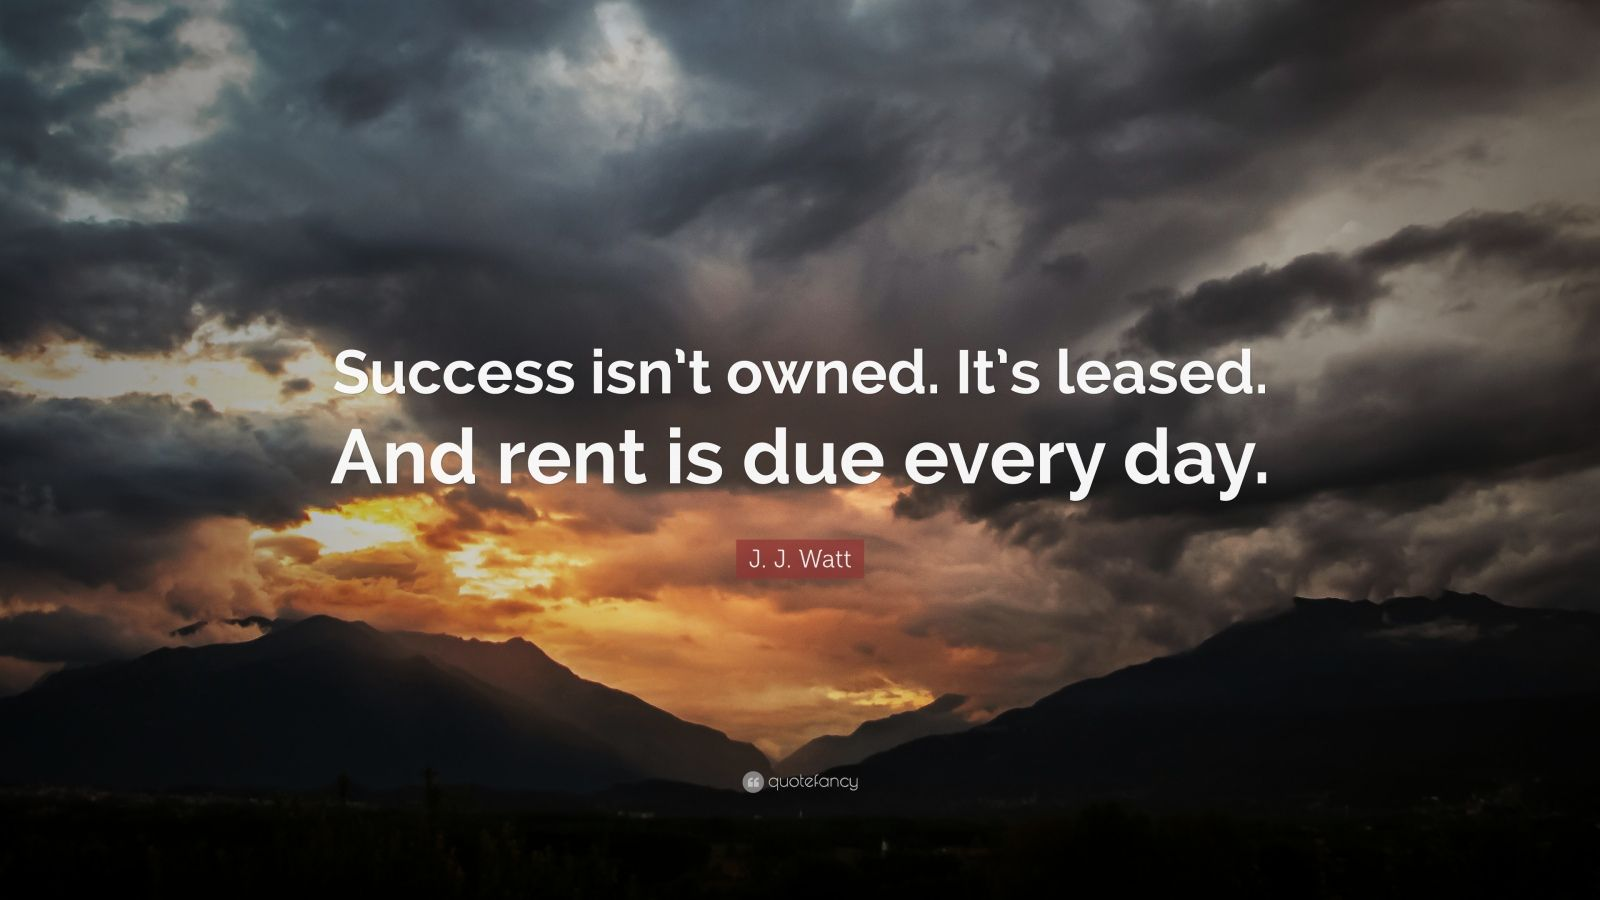 [Image] Rent is due every day